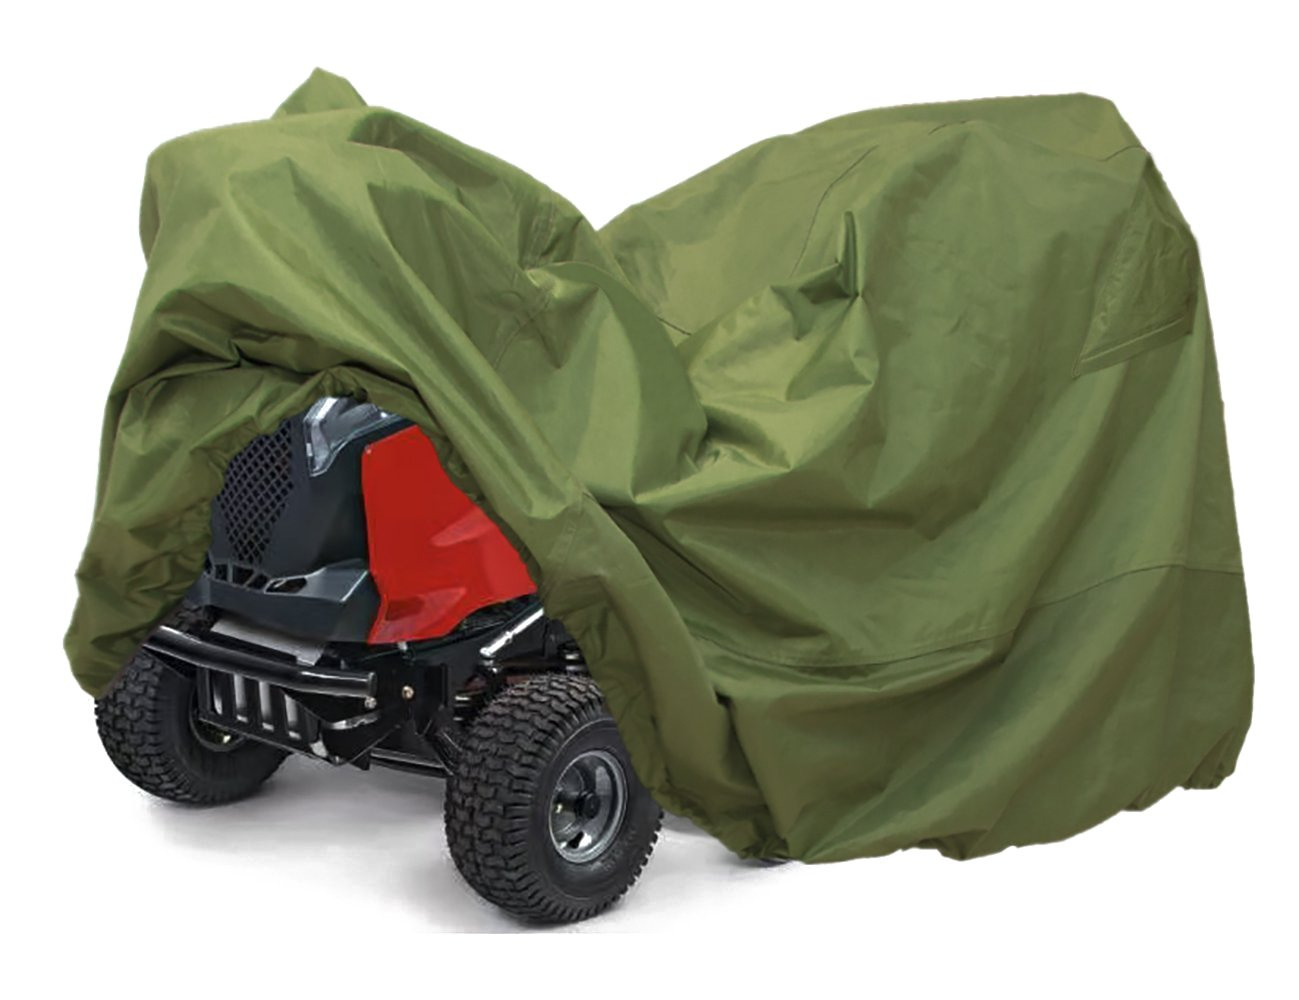 RORAIMA Lawn Mower Tractor Cover with Elastic Hems to Fit a Deck up to 54'' Green Color Product Size 72'' L x 44'' W x 46'' H (Green Color)